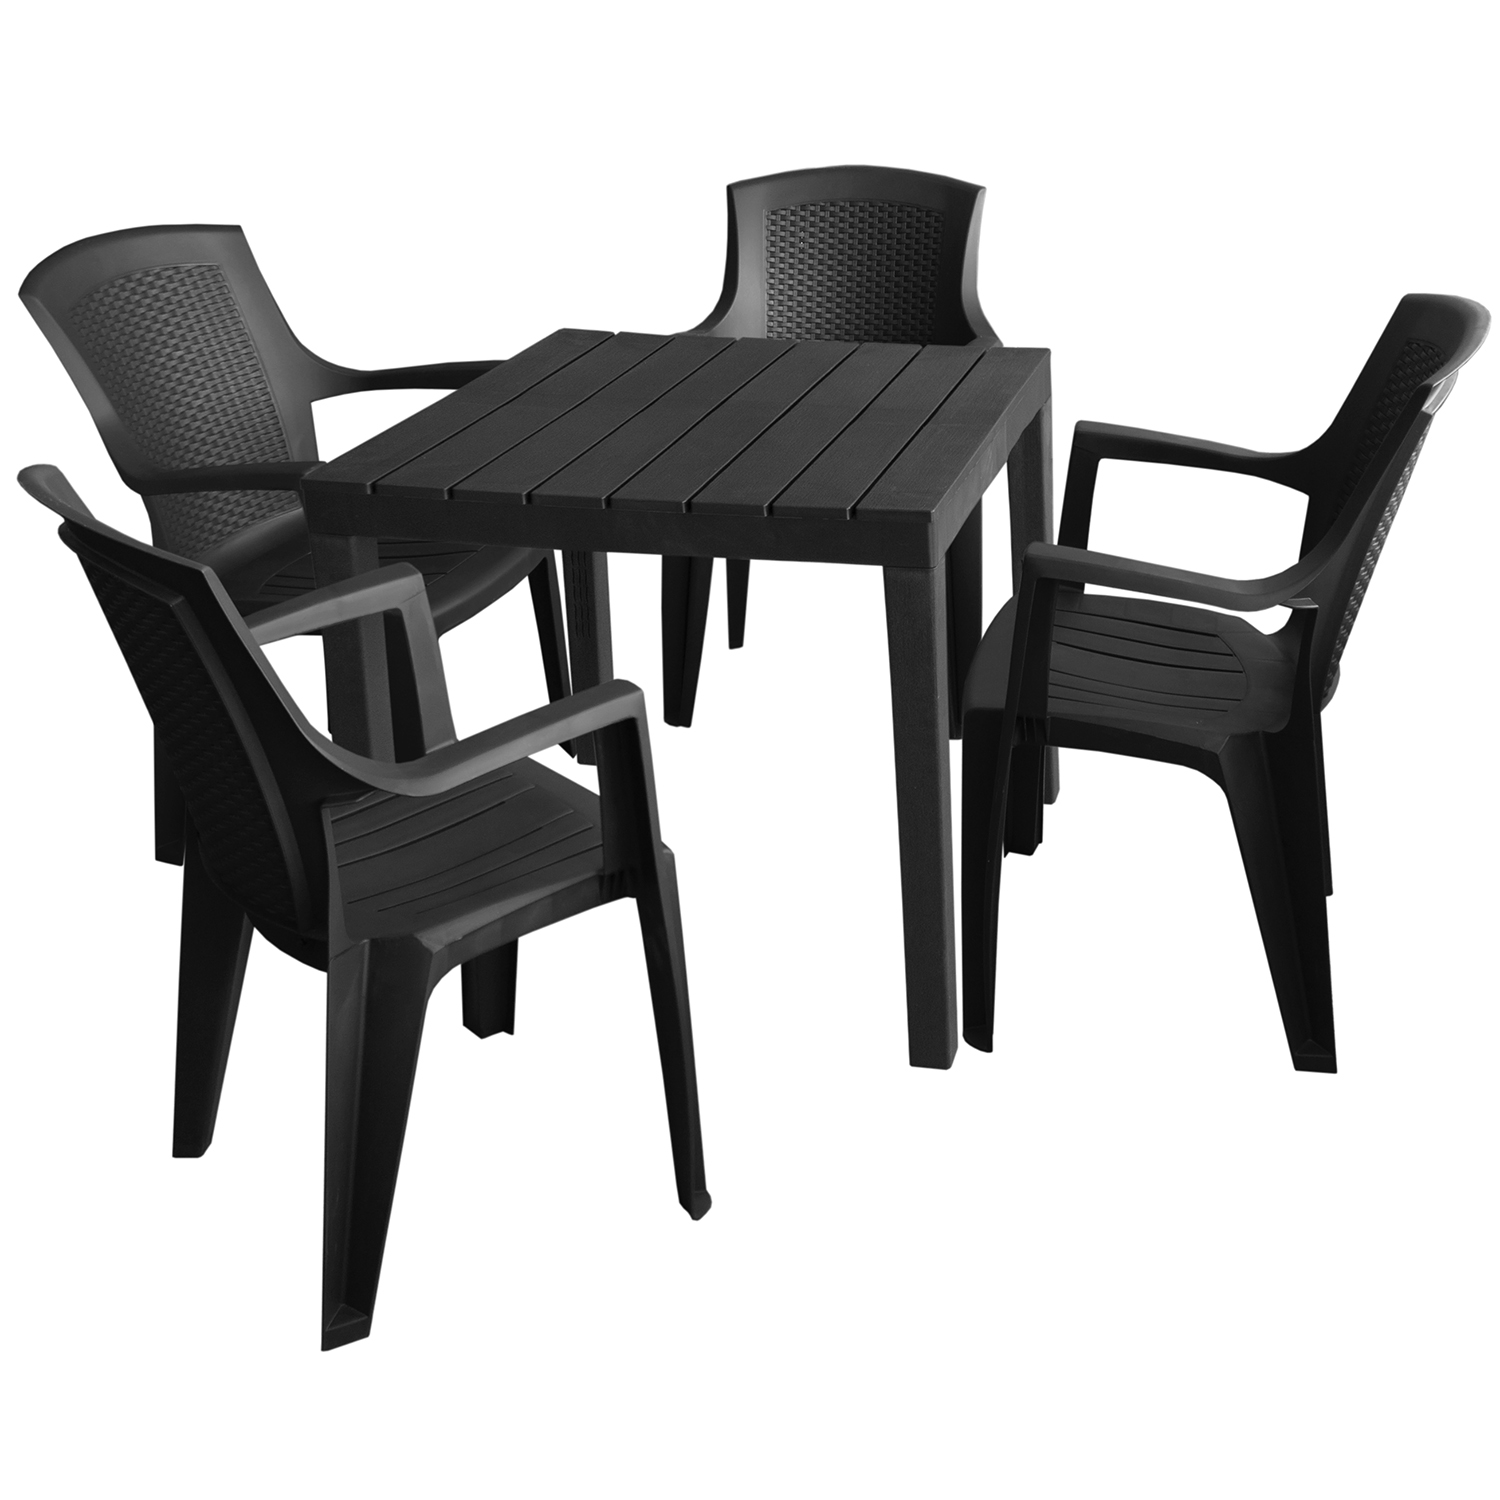 gartenm bel set gartentisch bali 78x78cm 4x stapelstuhl eden anthrazit garten bistro und. Black Bedroom Furniture Sets. Home Design Ideas